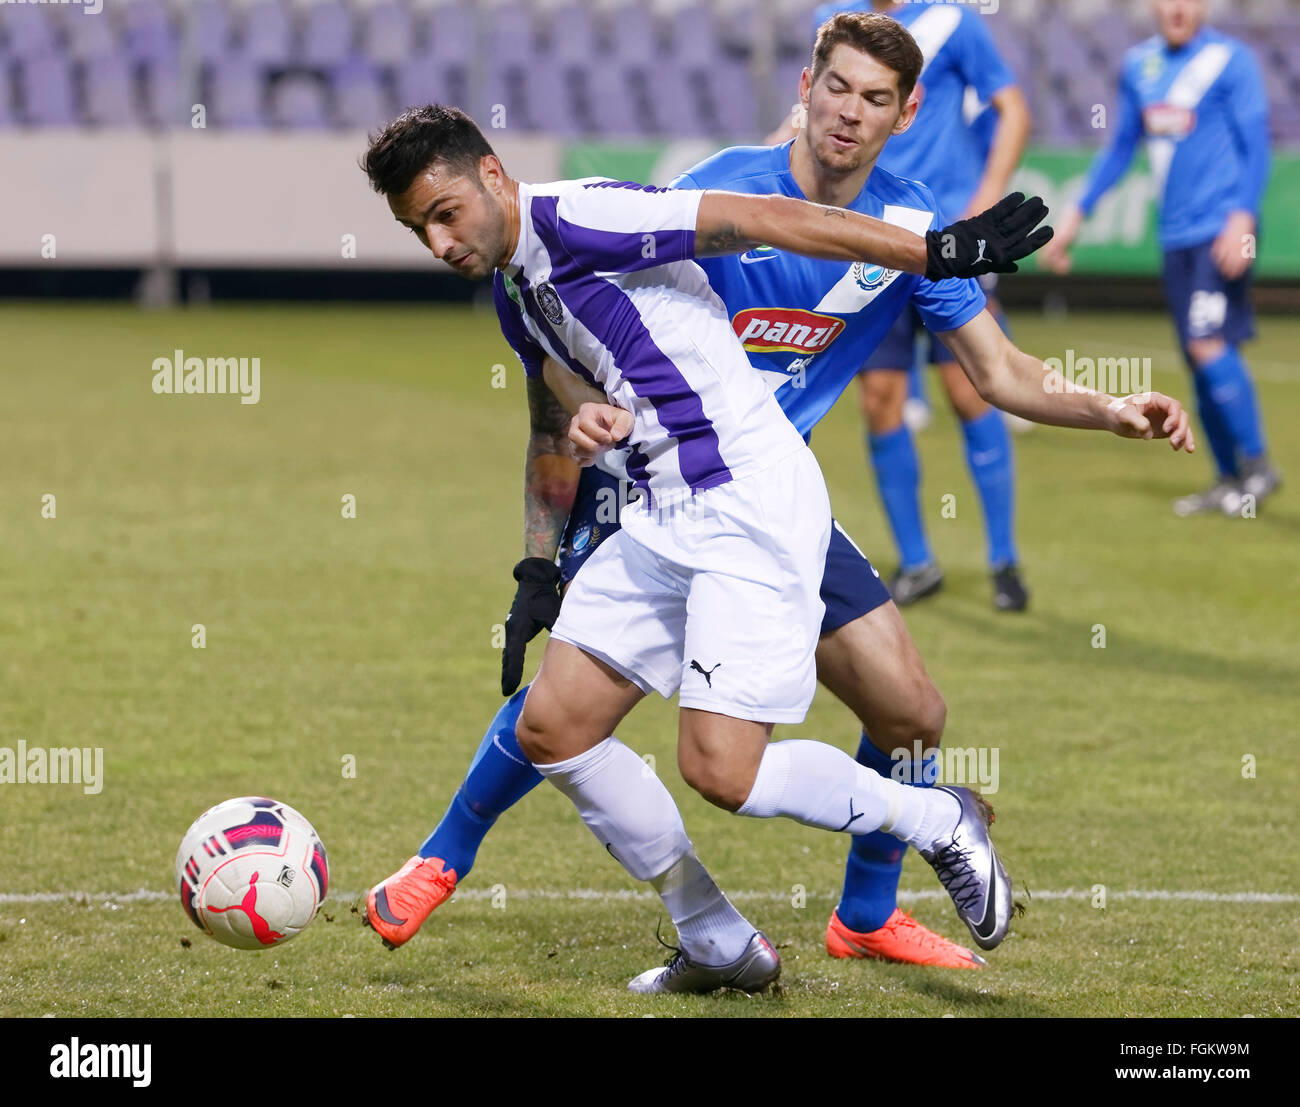 Budapest, Hungary. 20th February,  2016. Duel between Laszlo Lencse of Ujpest (l) and Barnabas Bese of MTK during - Stock Image